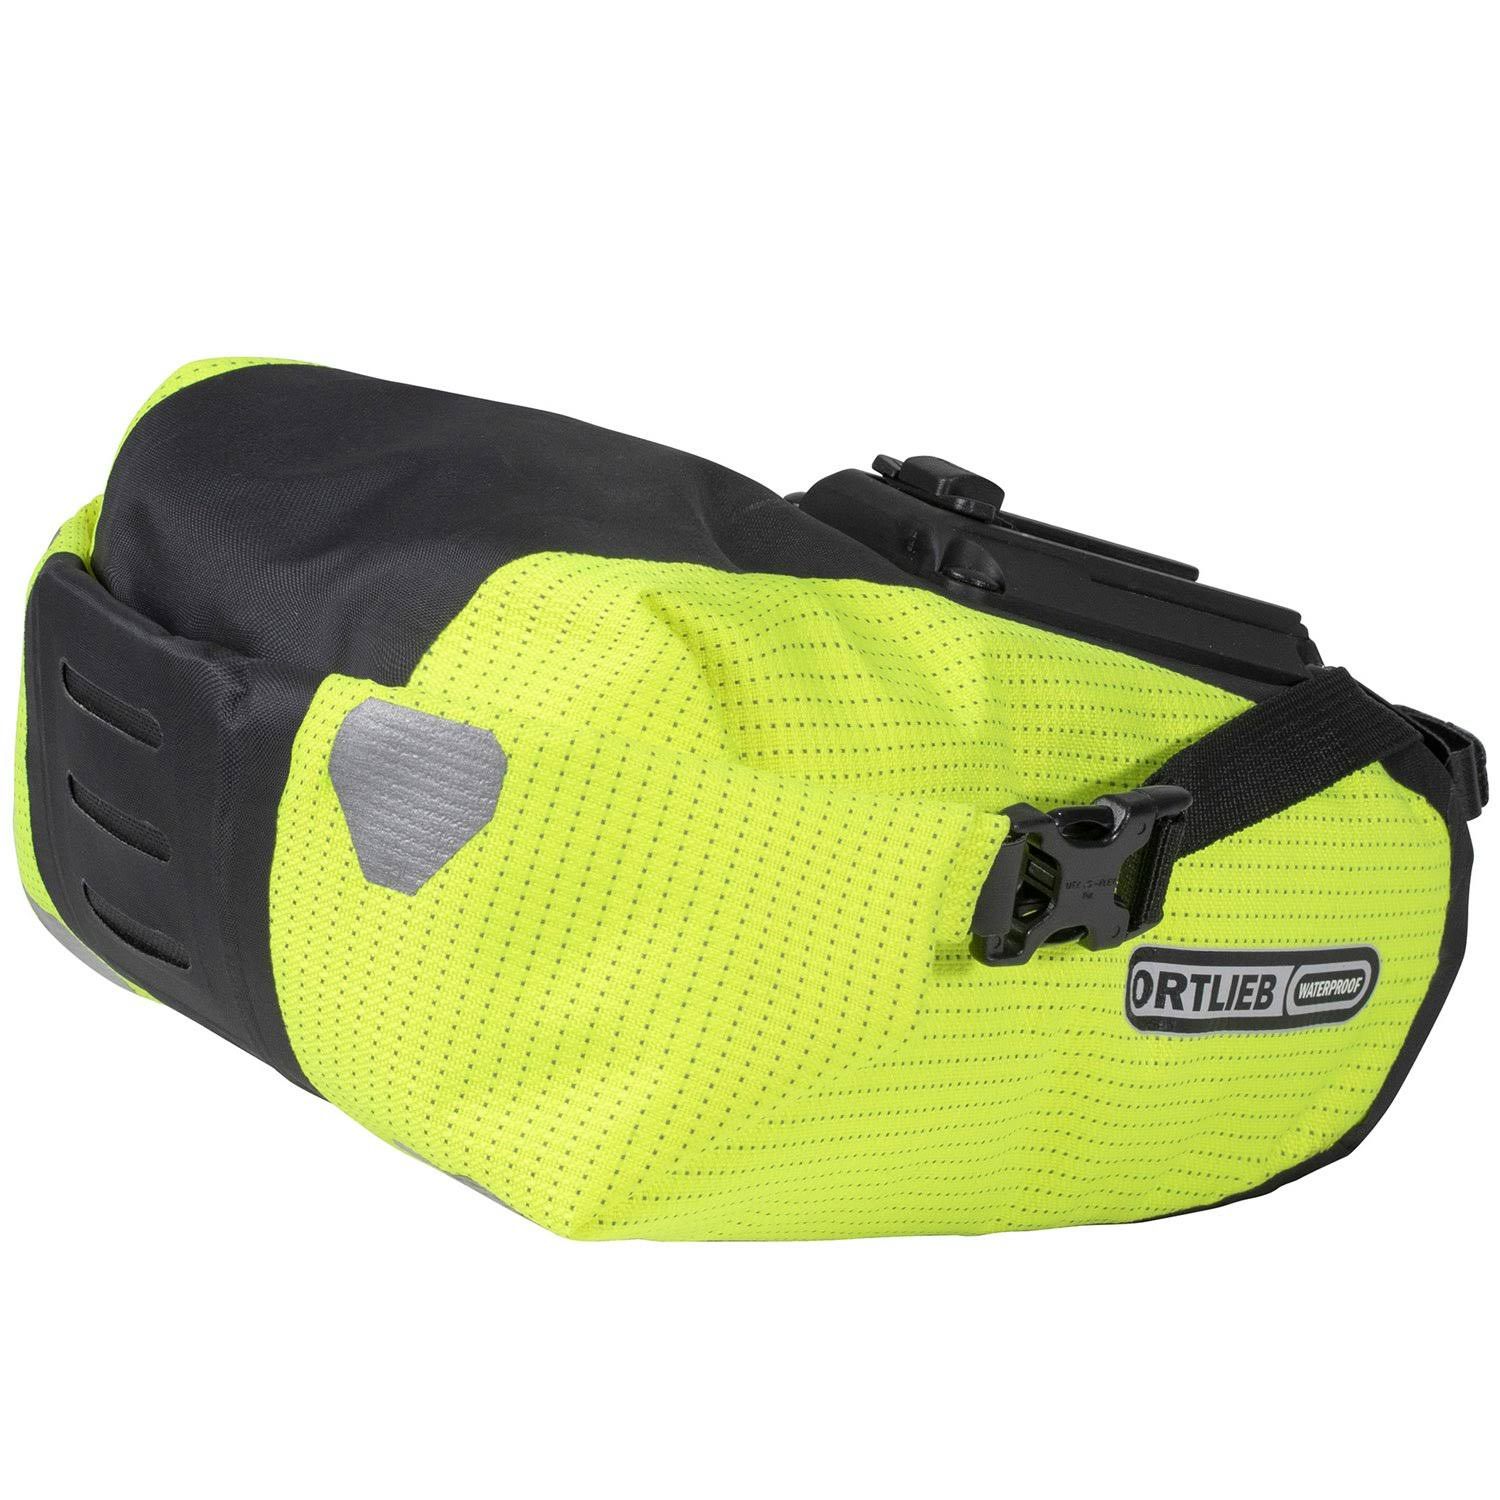 Ortlieb High Visibility Saddle Bag Two Yellow